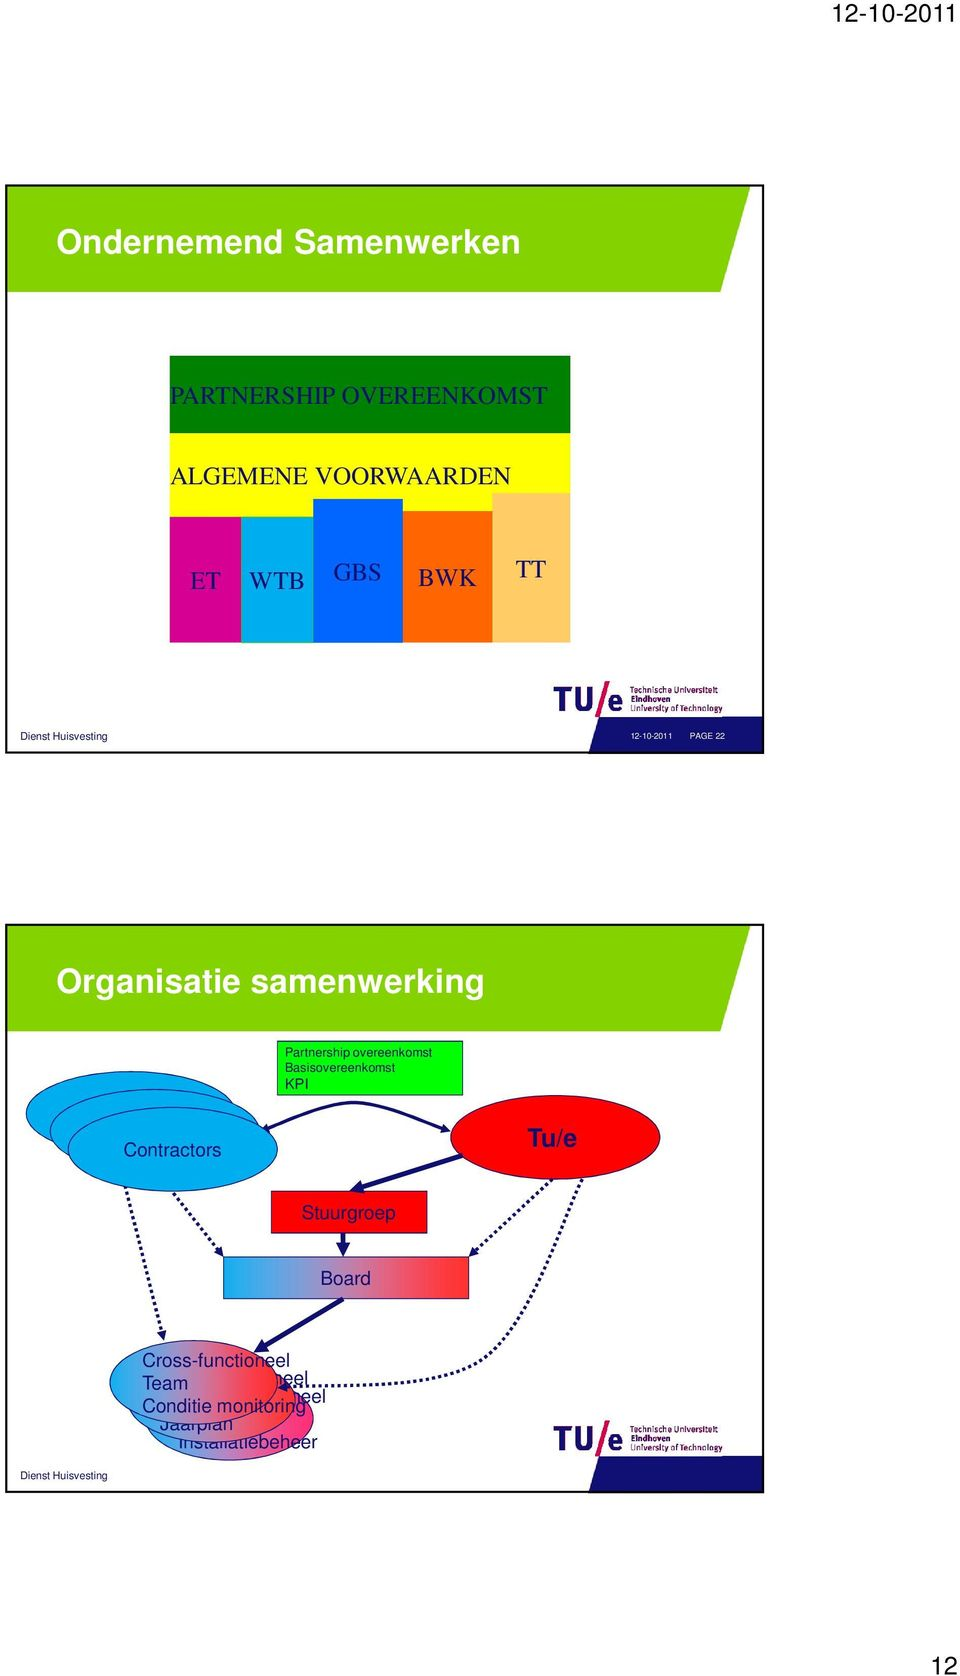 Partnership overeenkomst Basisovereenkomst KPI Tu/e Stuurgroep Board Cross-functioneel Team